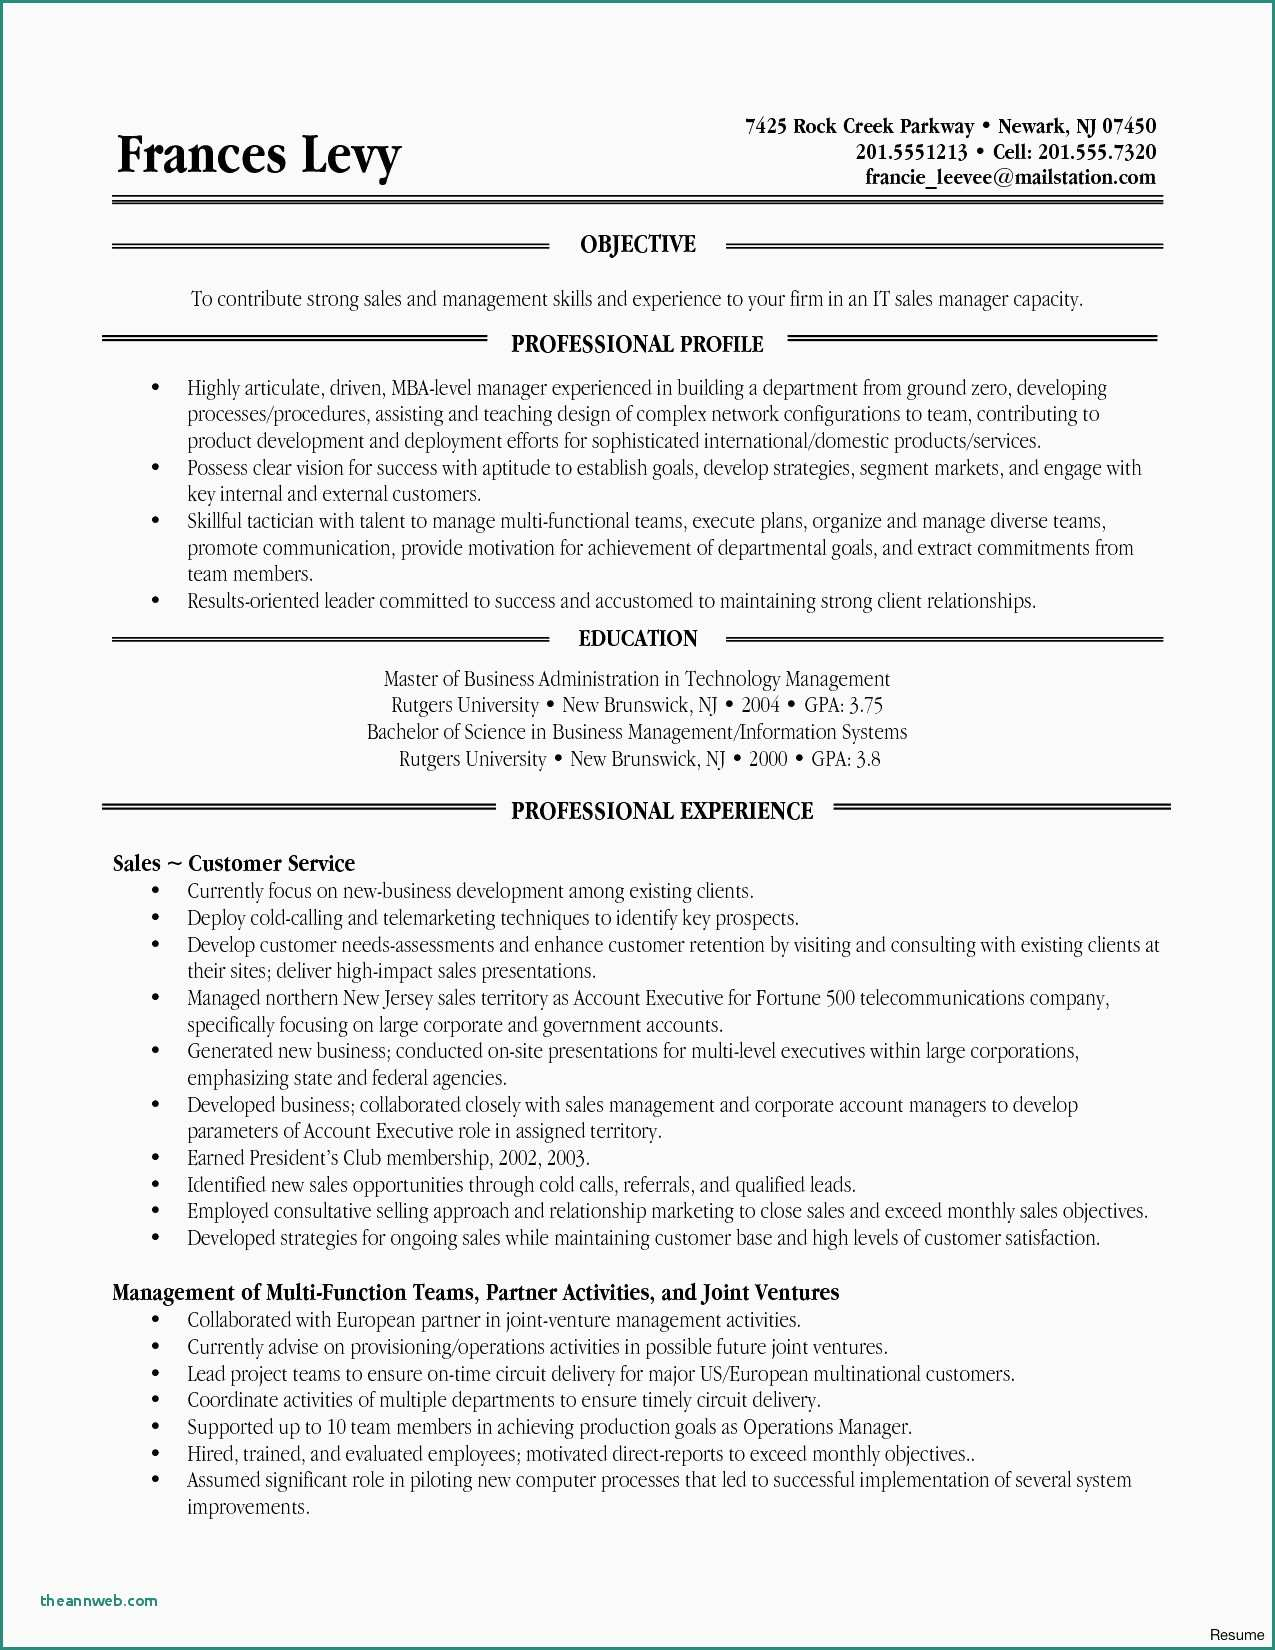 rutgers sample resume